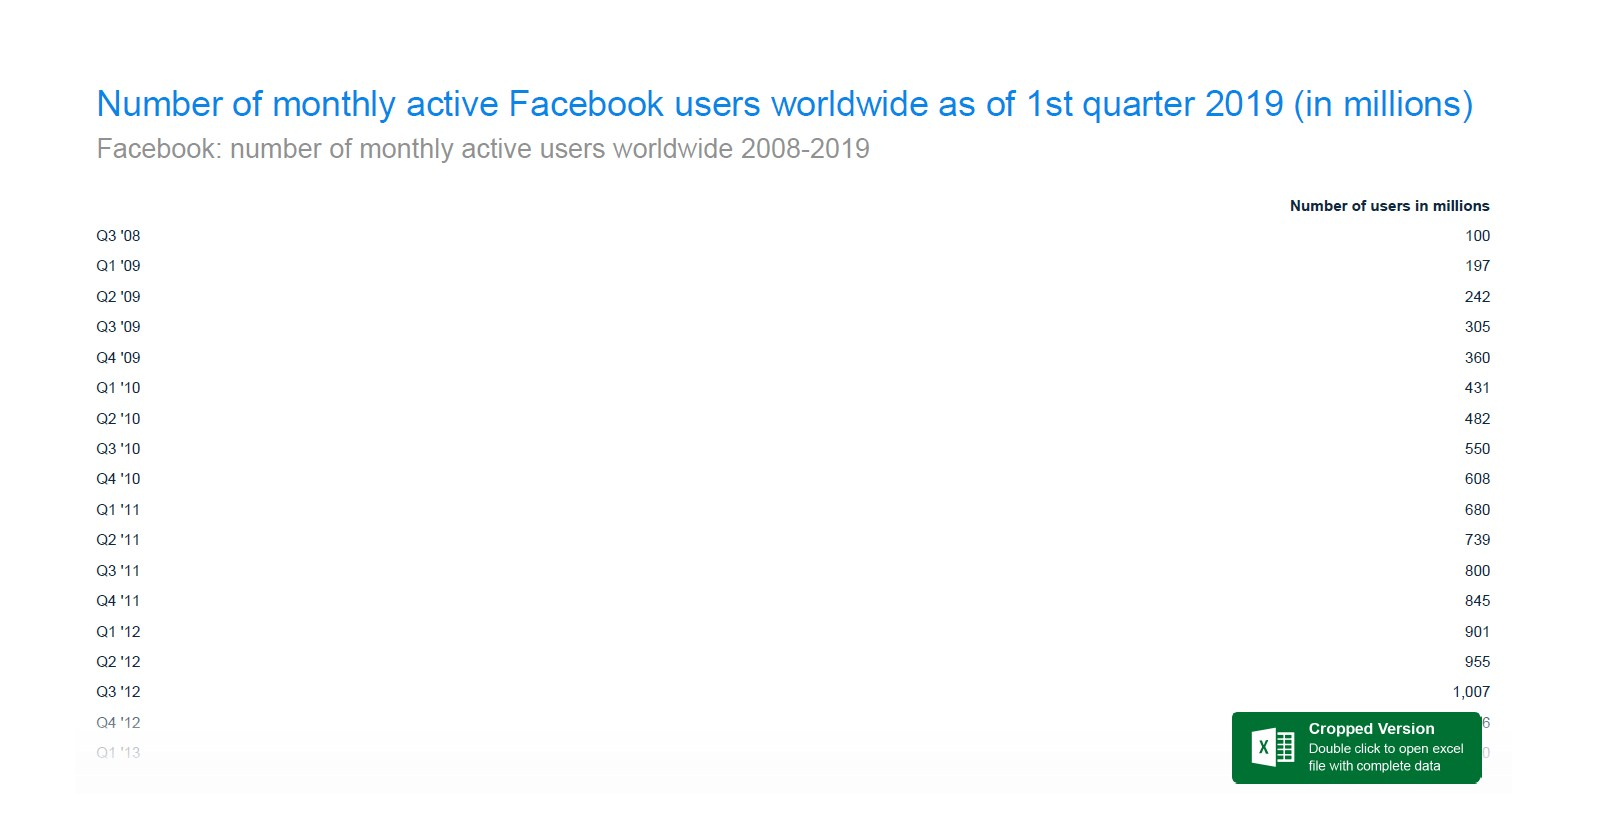 Facebook is the most used Facebook product